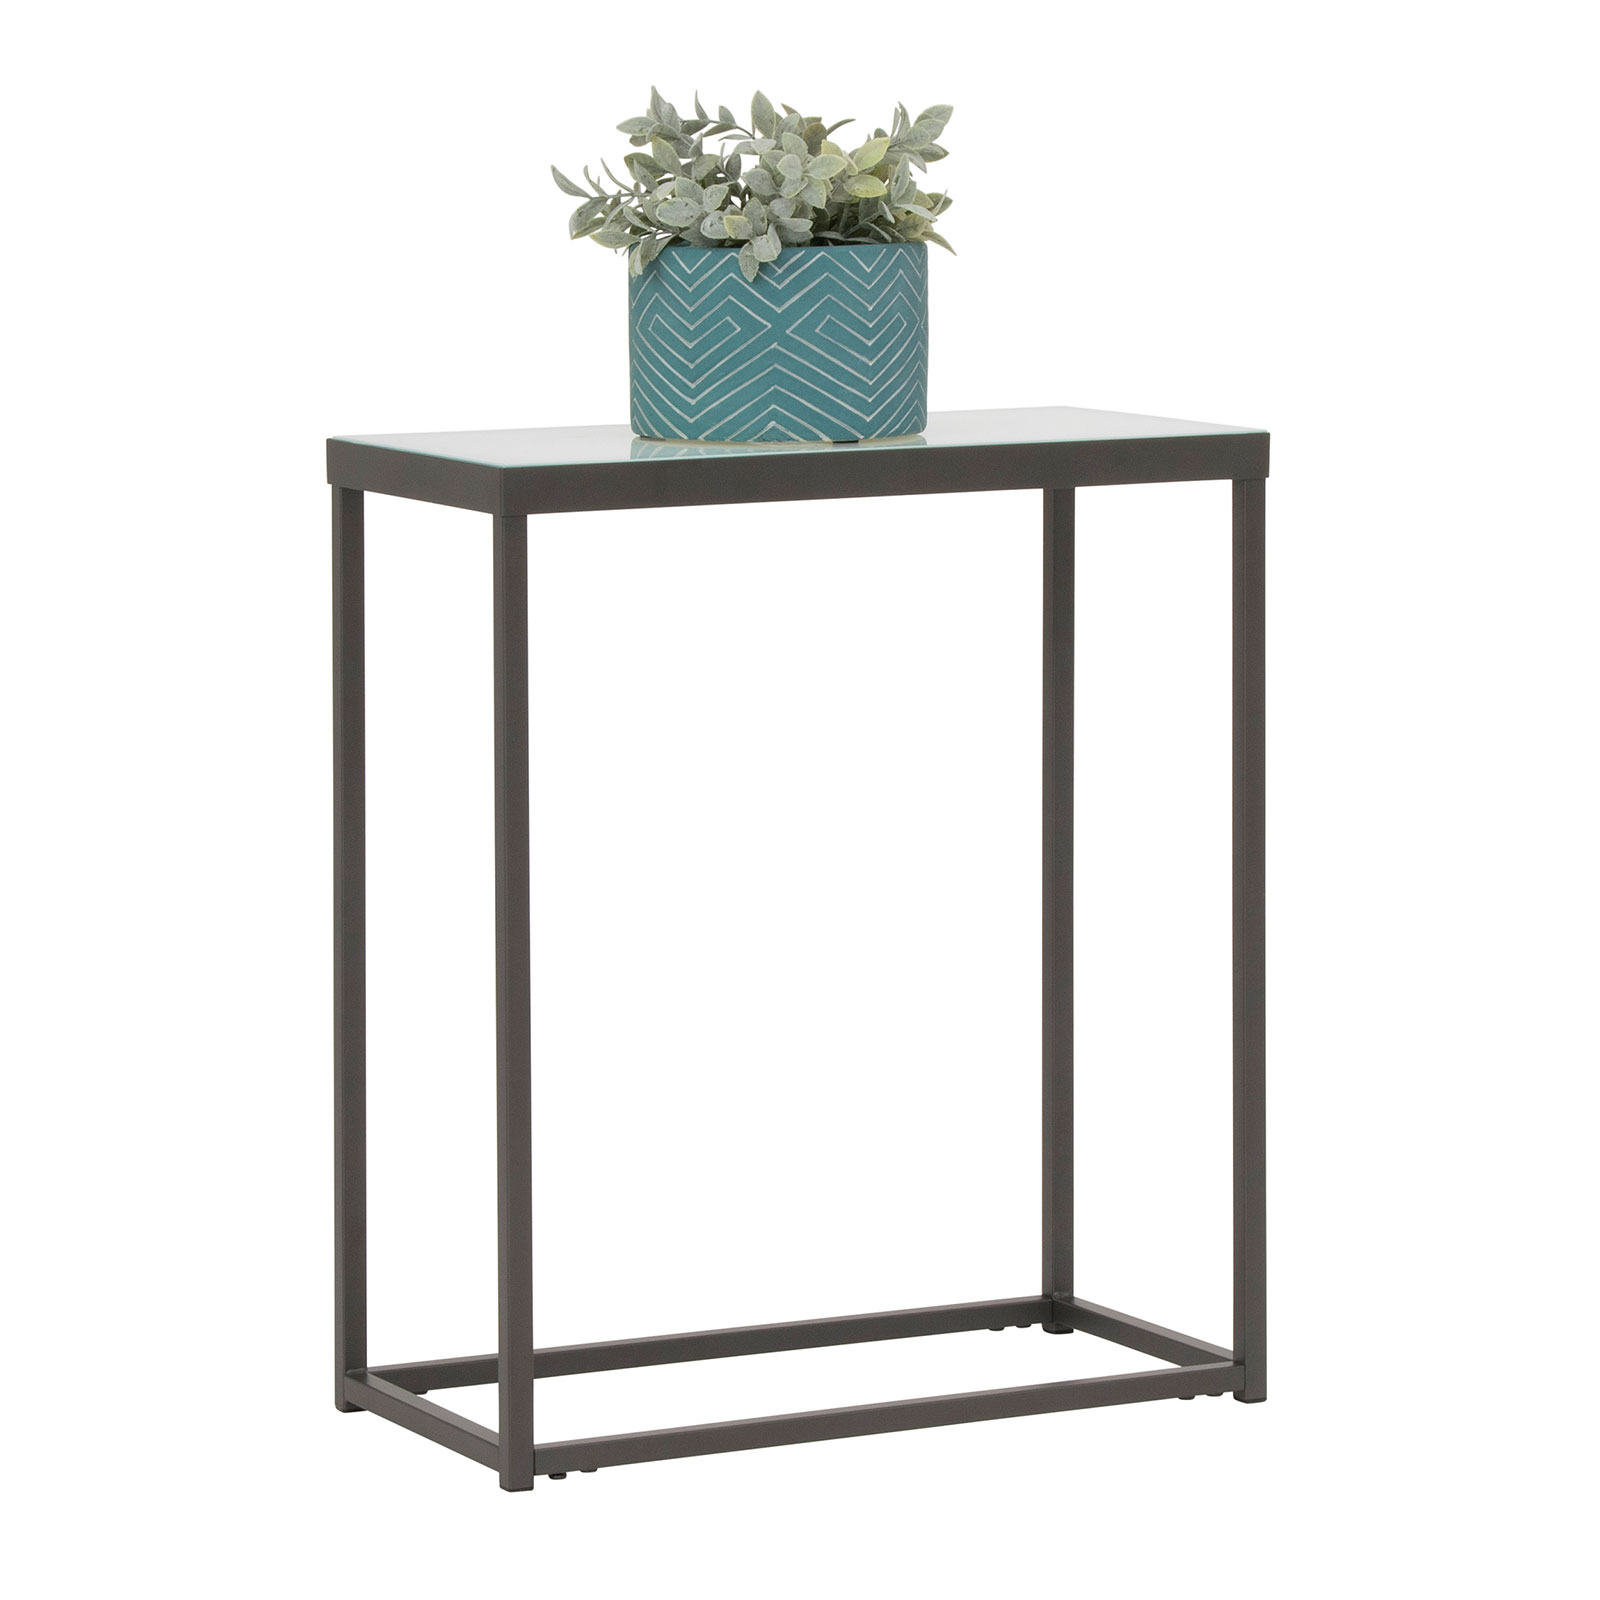 71052-Camber-Side-Table-props1a